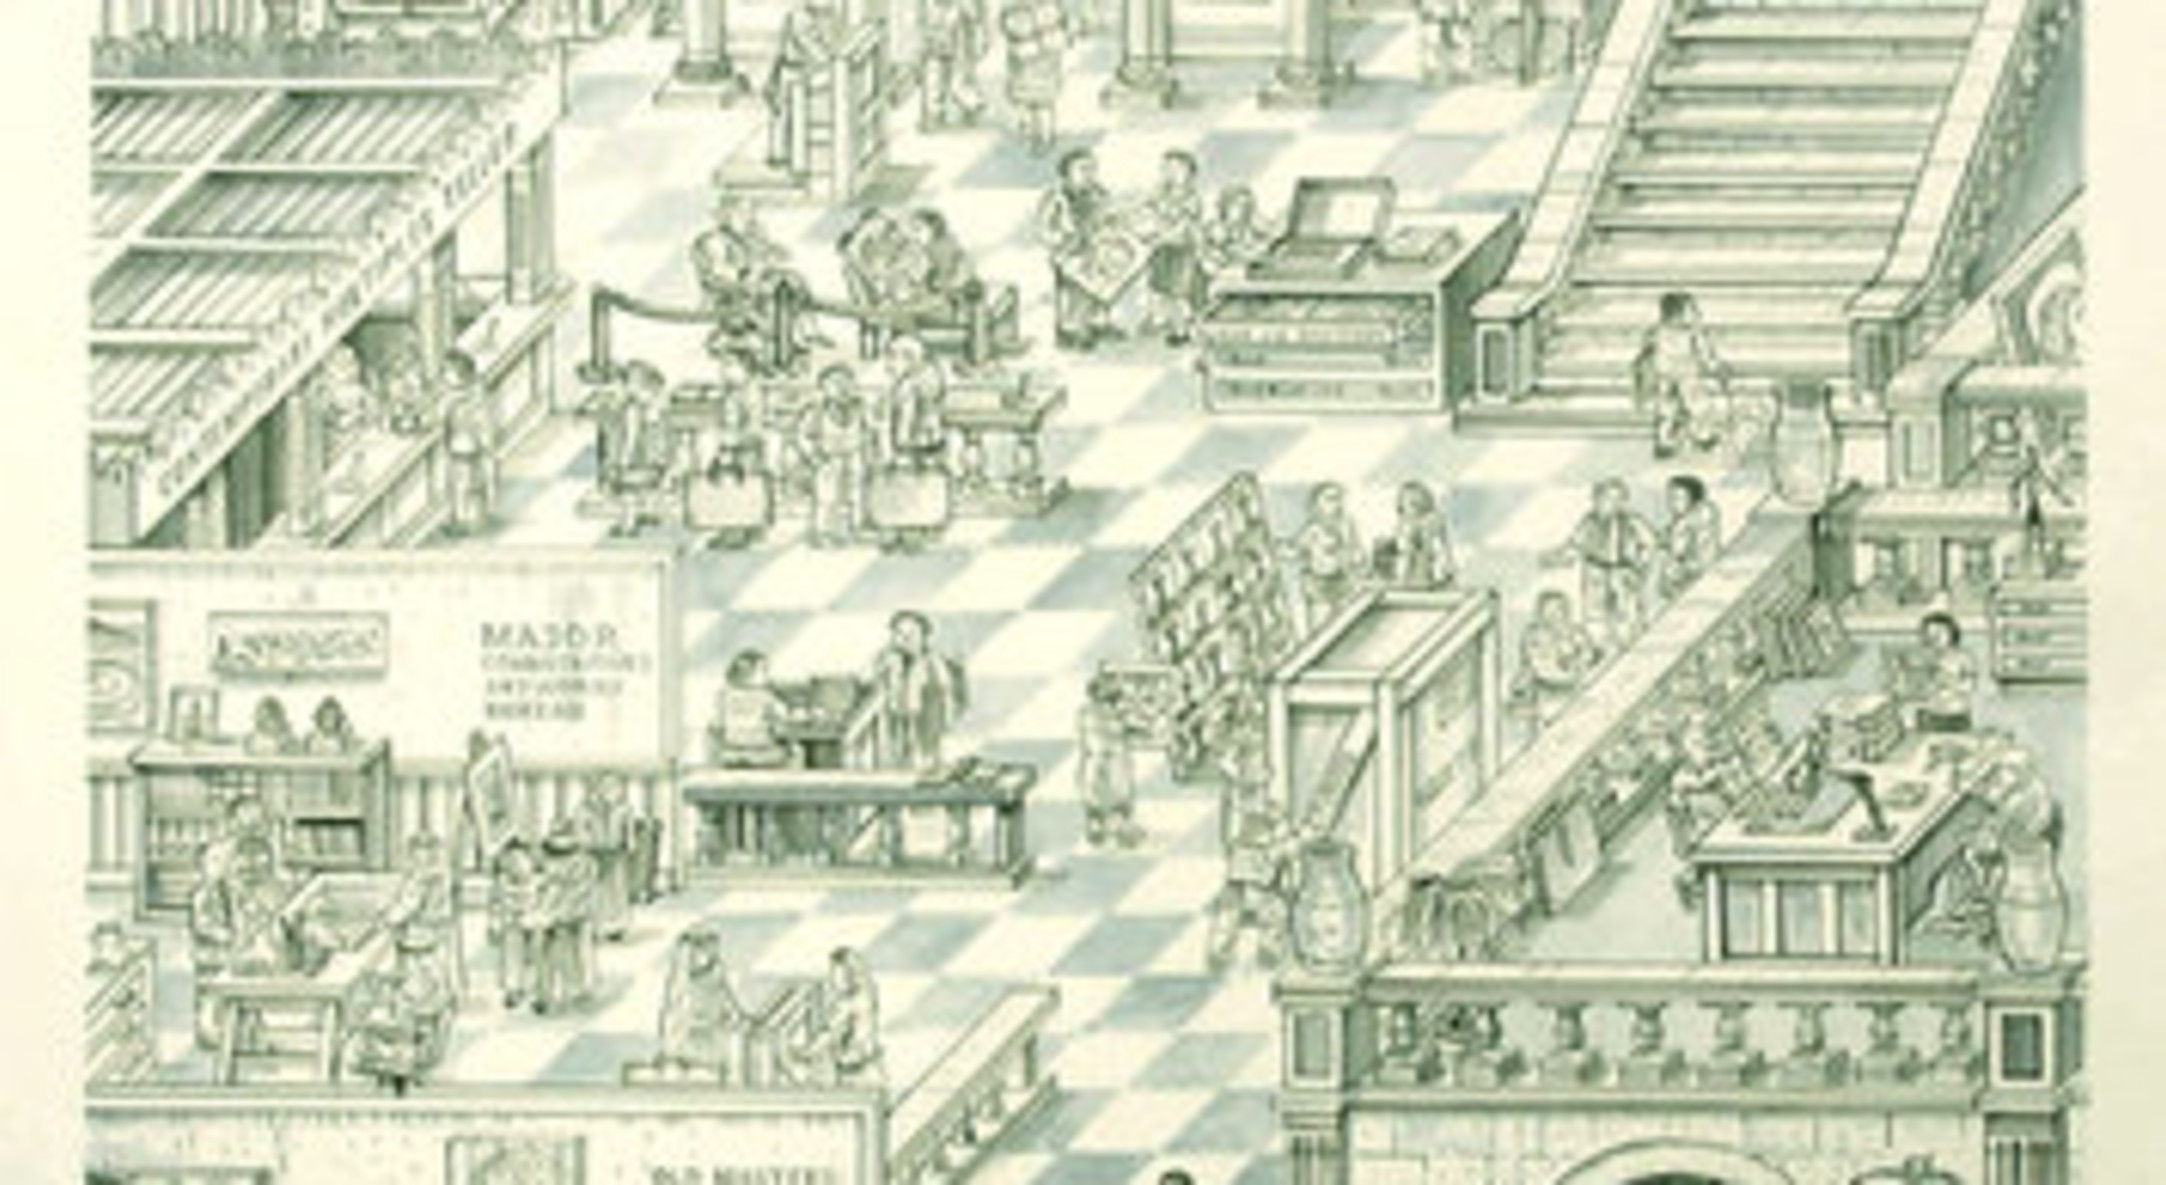 Adam Dant, The Art Bank, 2007, Hand coloured lithogram, 64 x 85 cms, 25.22 x 33.49 inches, Edition of 50